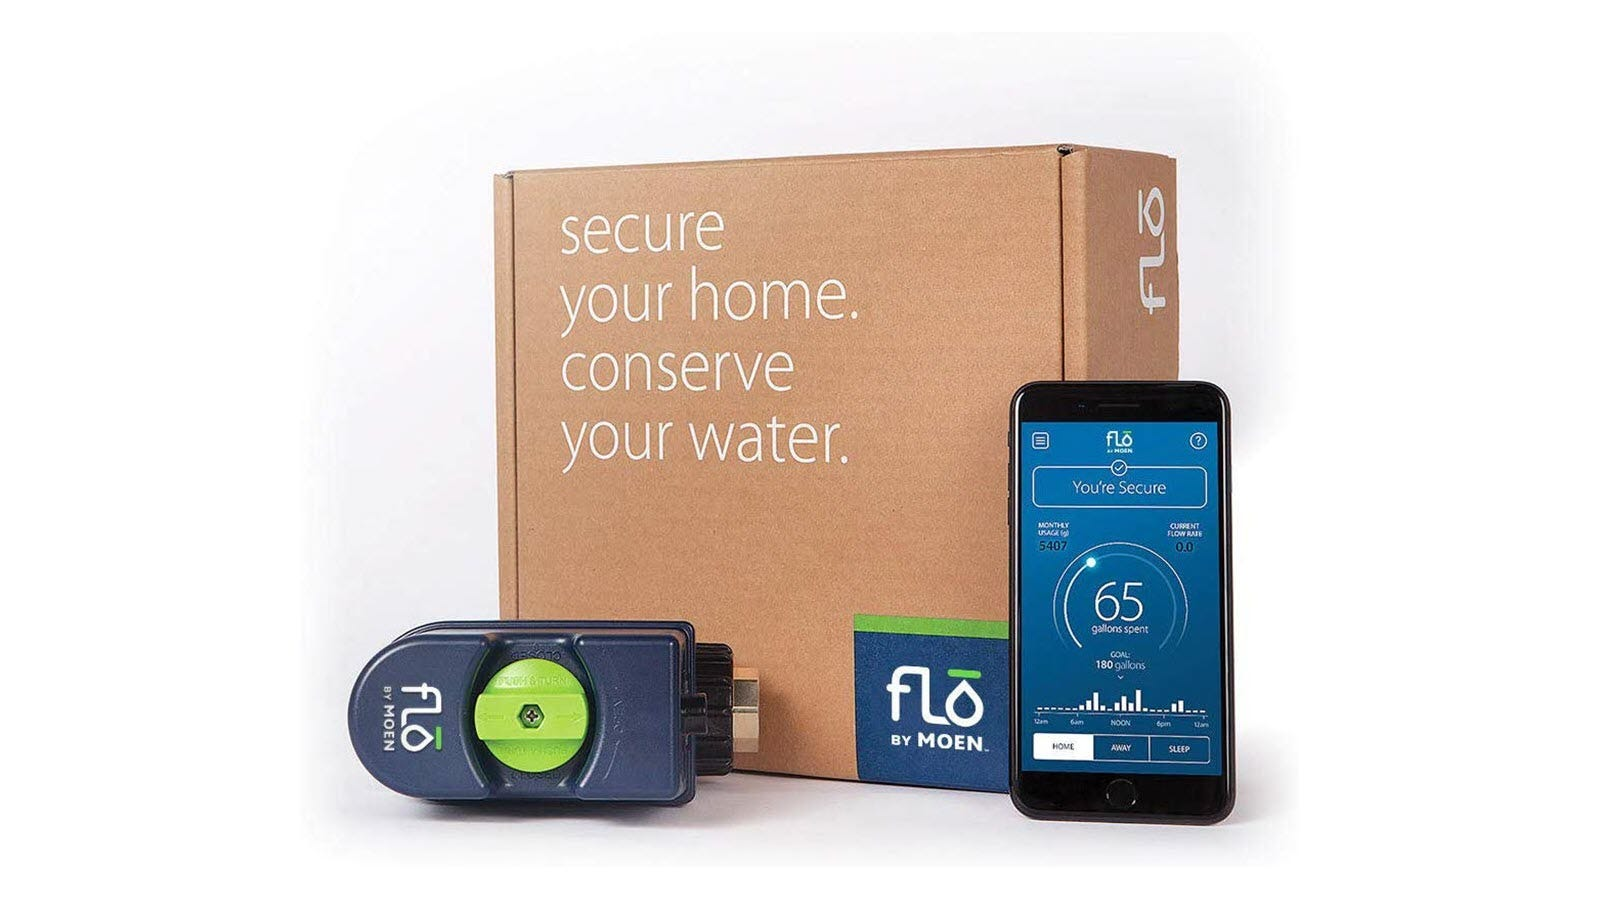 A Flo by Moen smart valve, box, and phone showing the app.